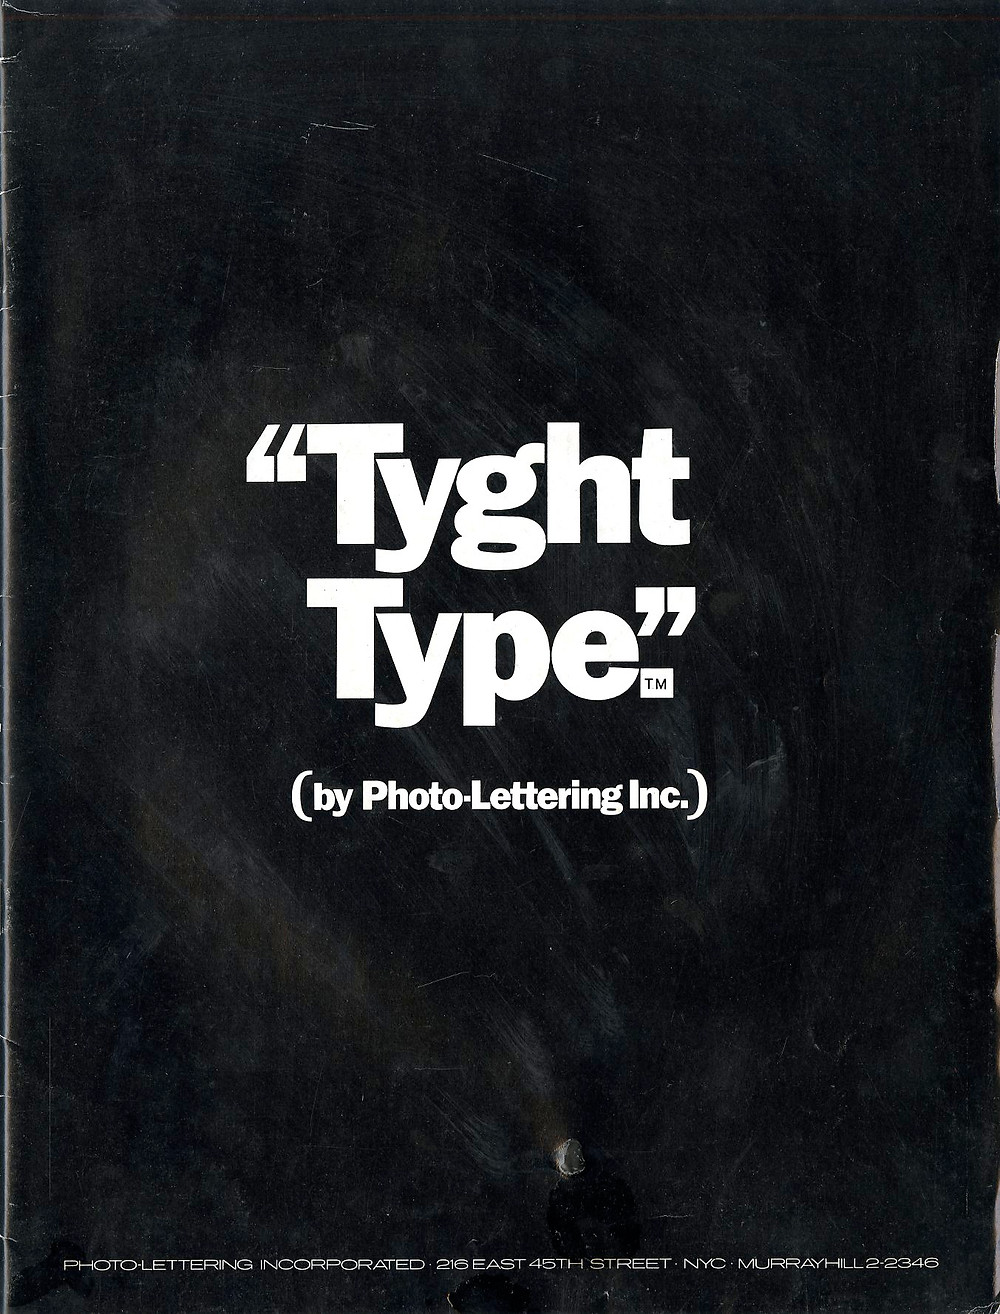 Tyght Type was a '70s guide to tight type.